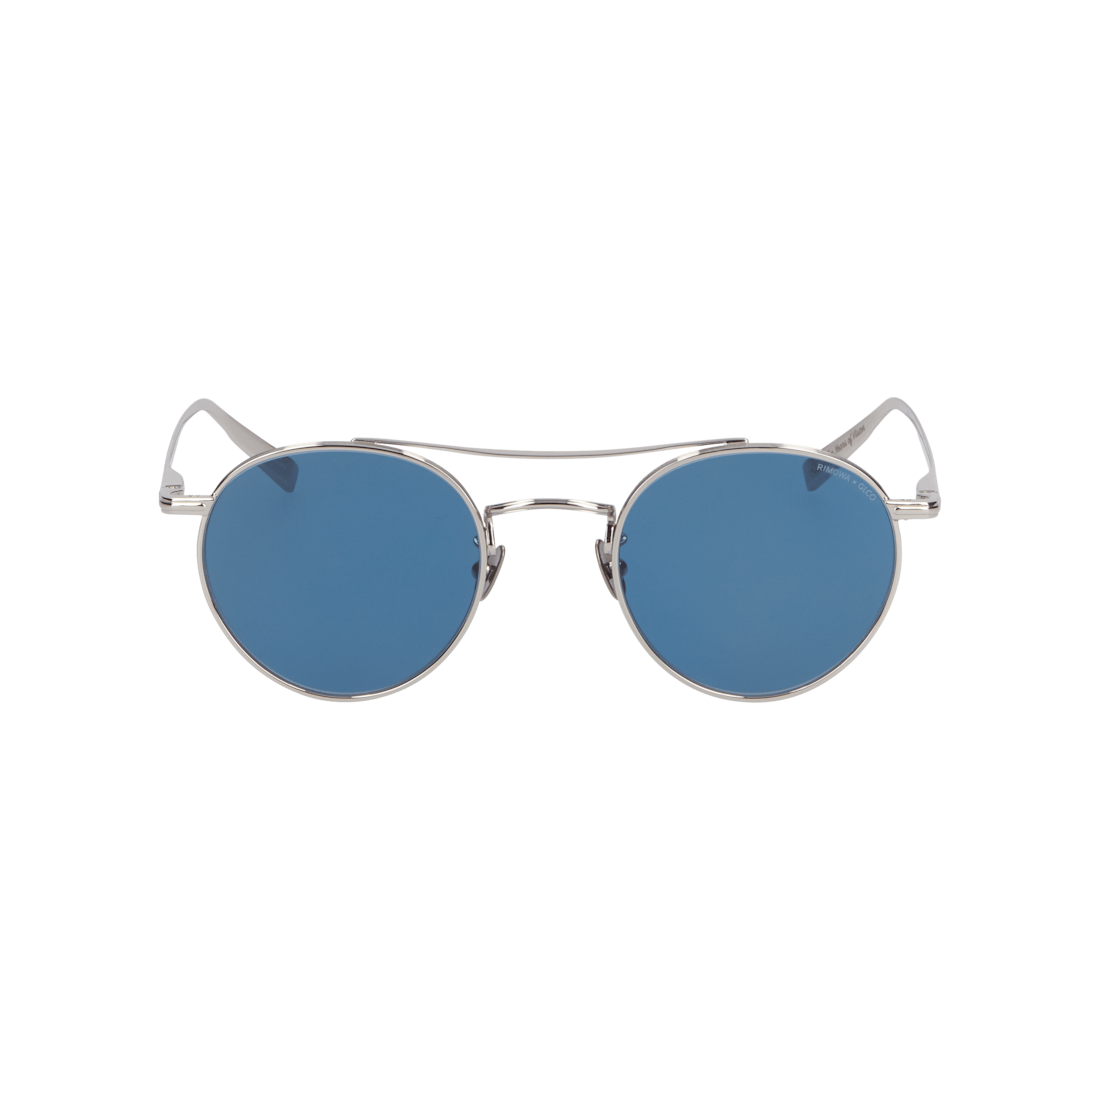 Sunglasses in Silver Metal